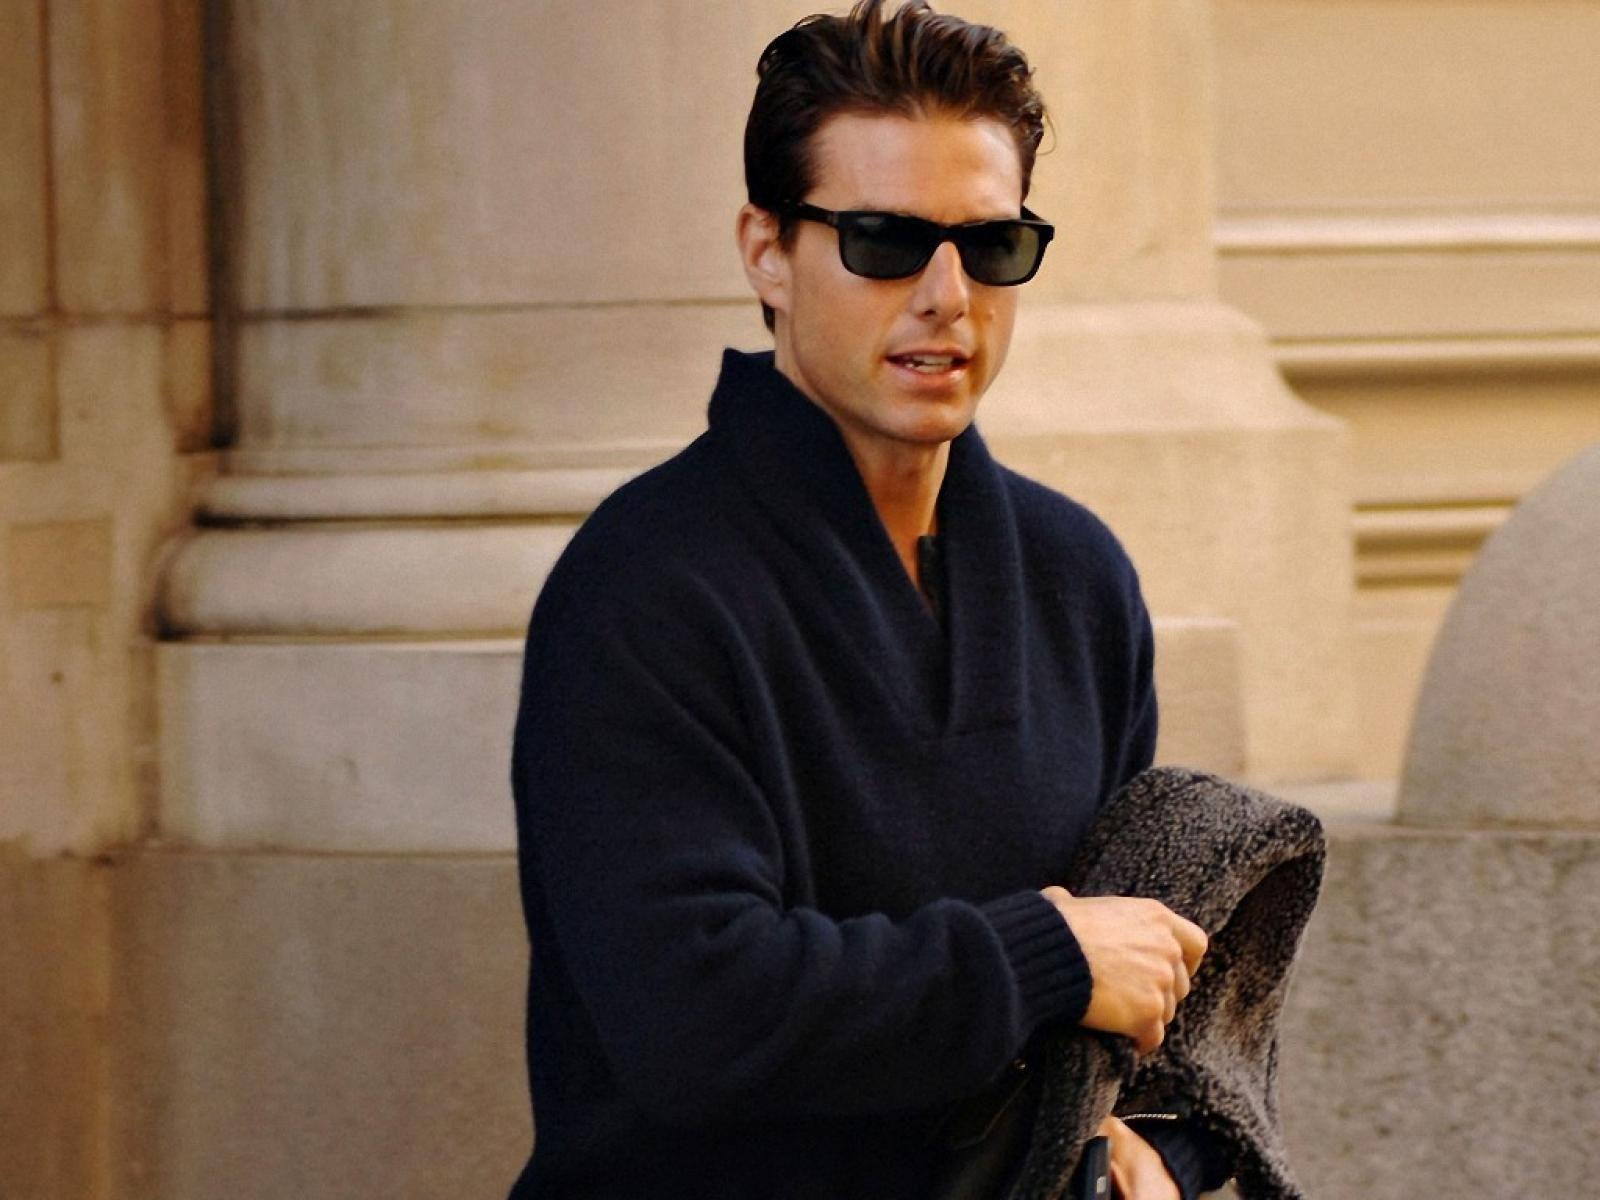 Tom cruise cute hd picture | Daily pics update | HD Wallpapers ...